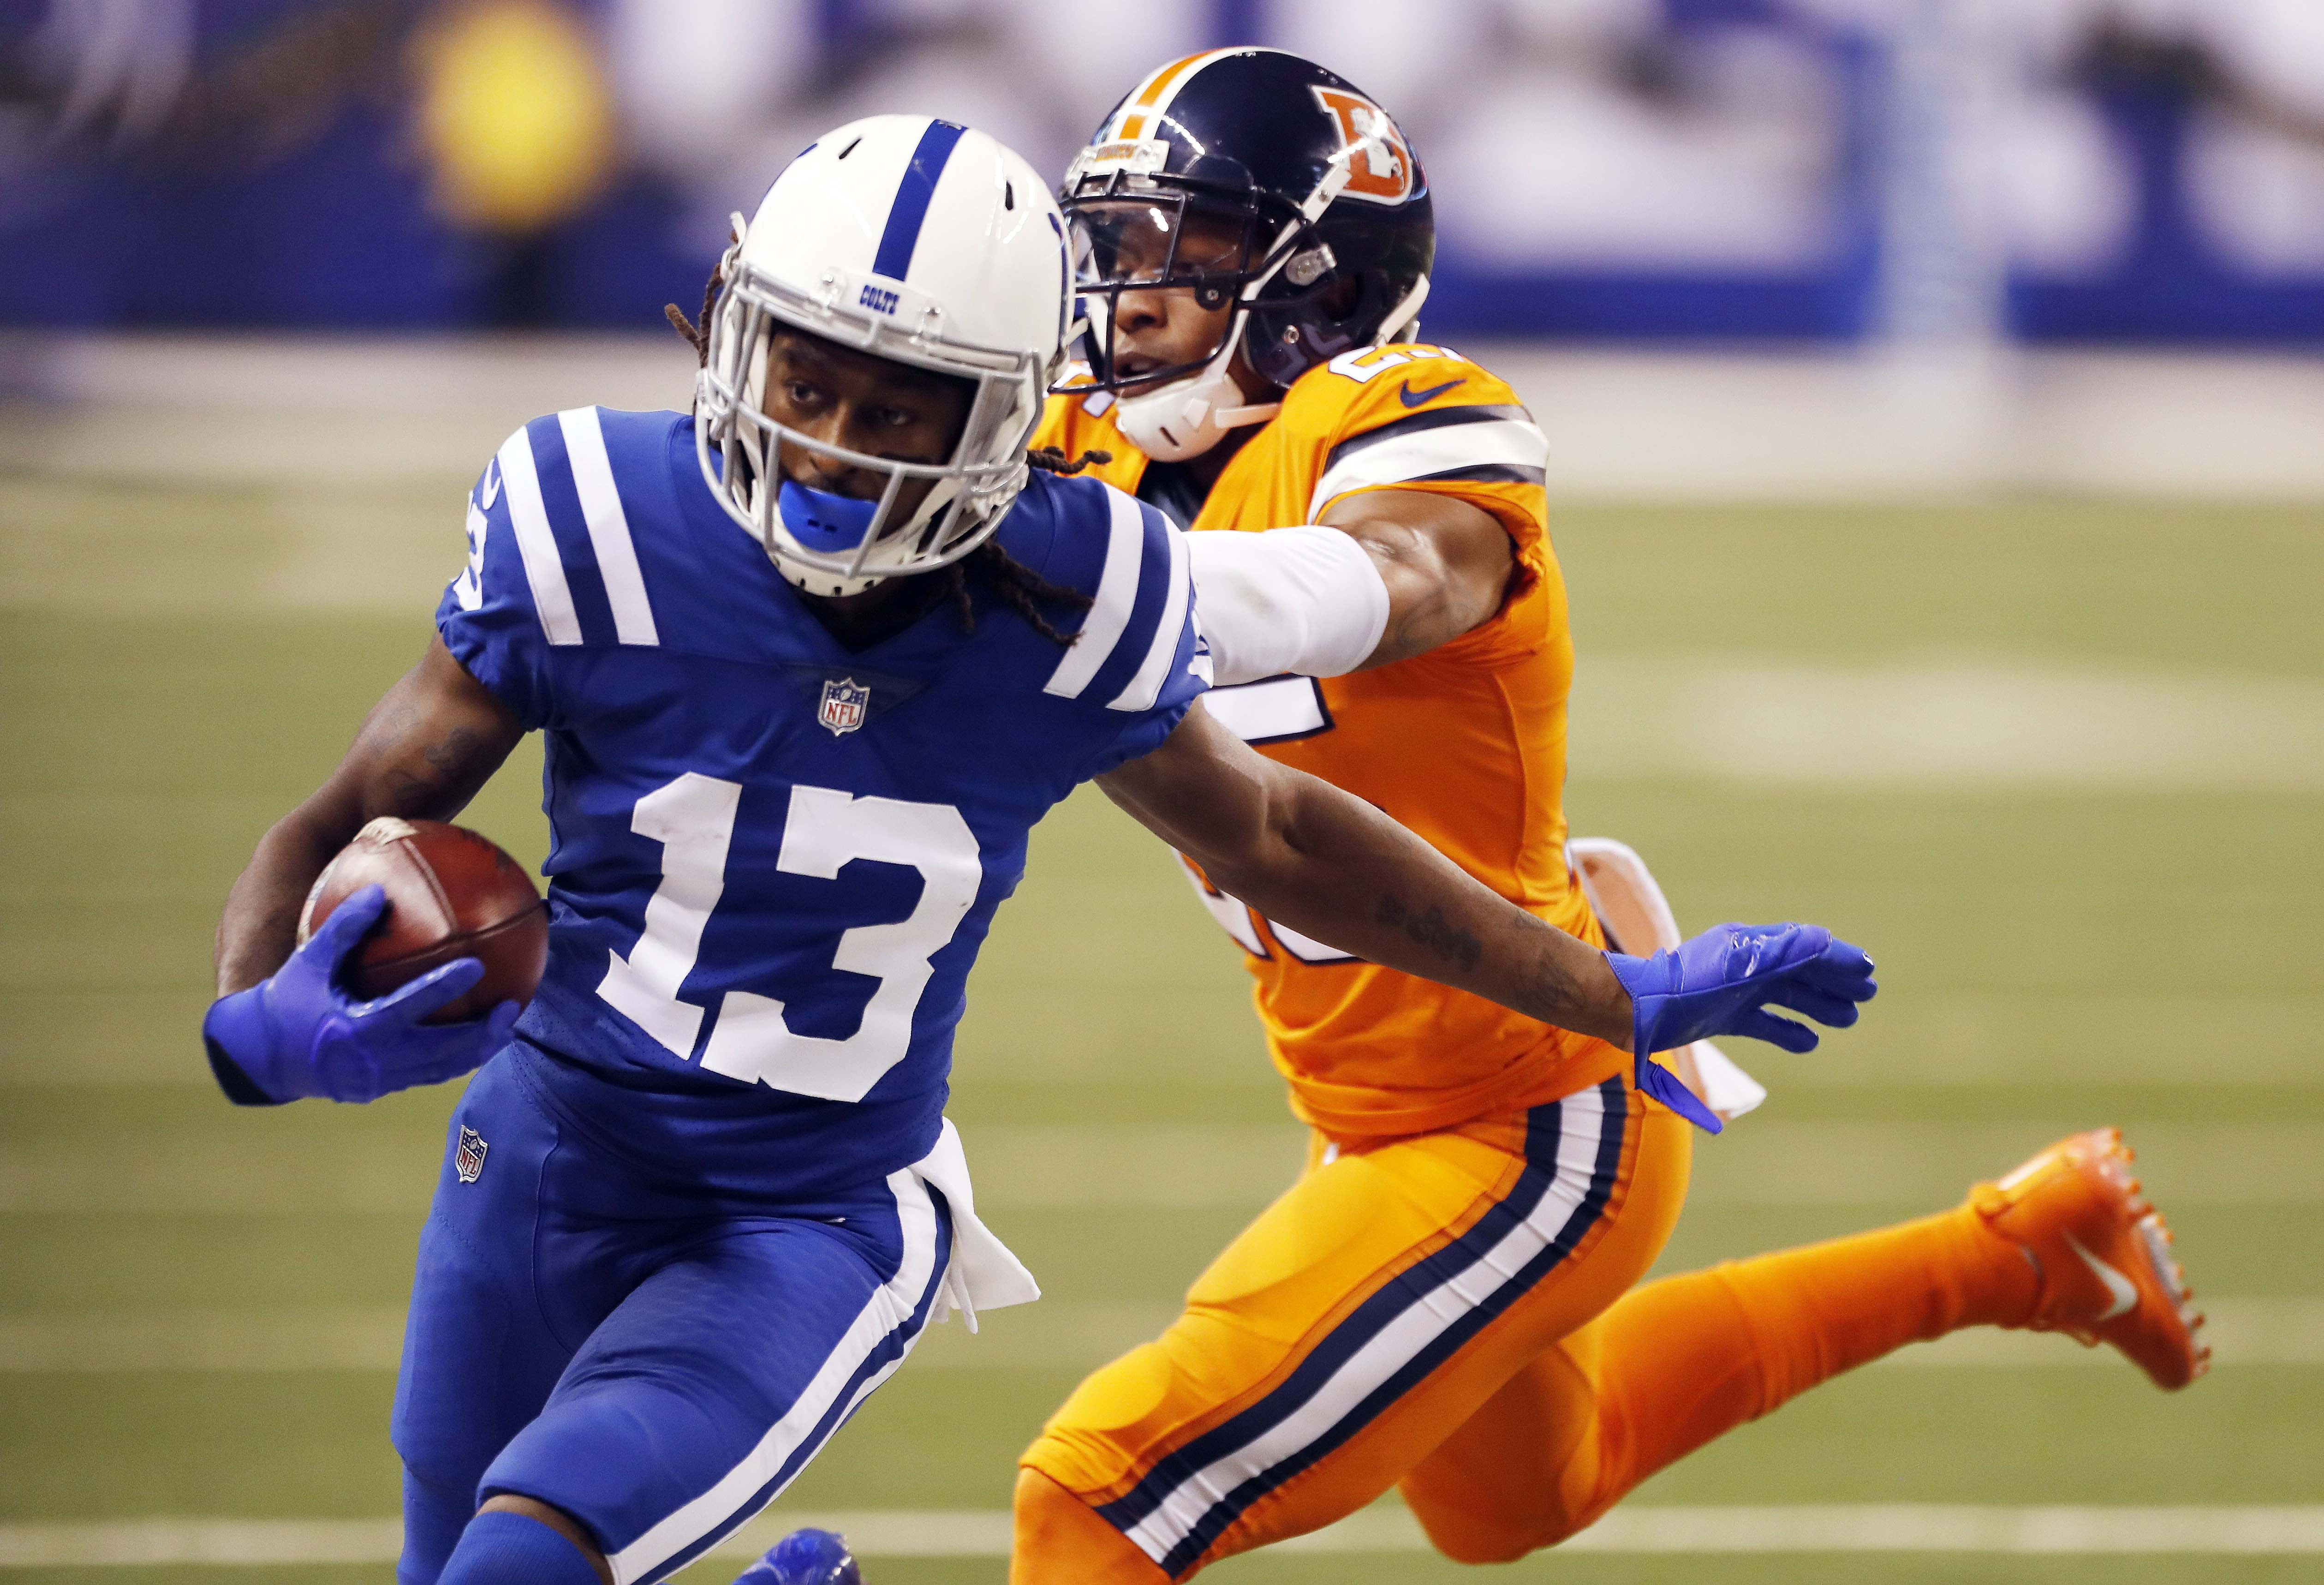 Colts' Hilton to replace Bengals' Green on Pro Bowl roster